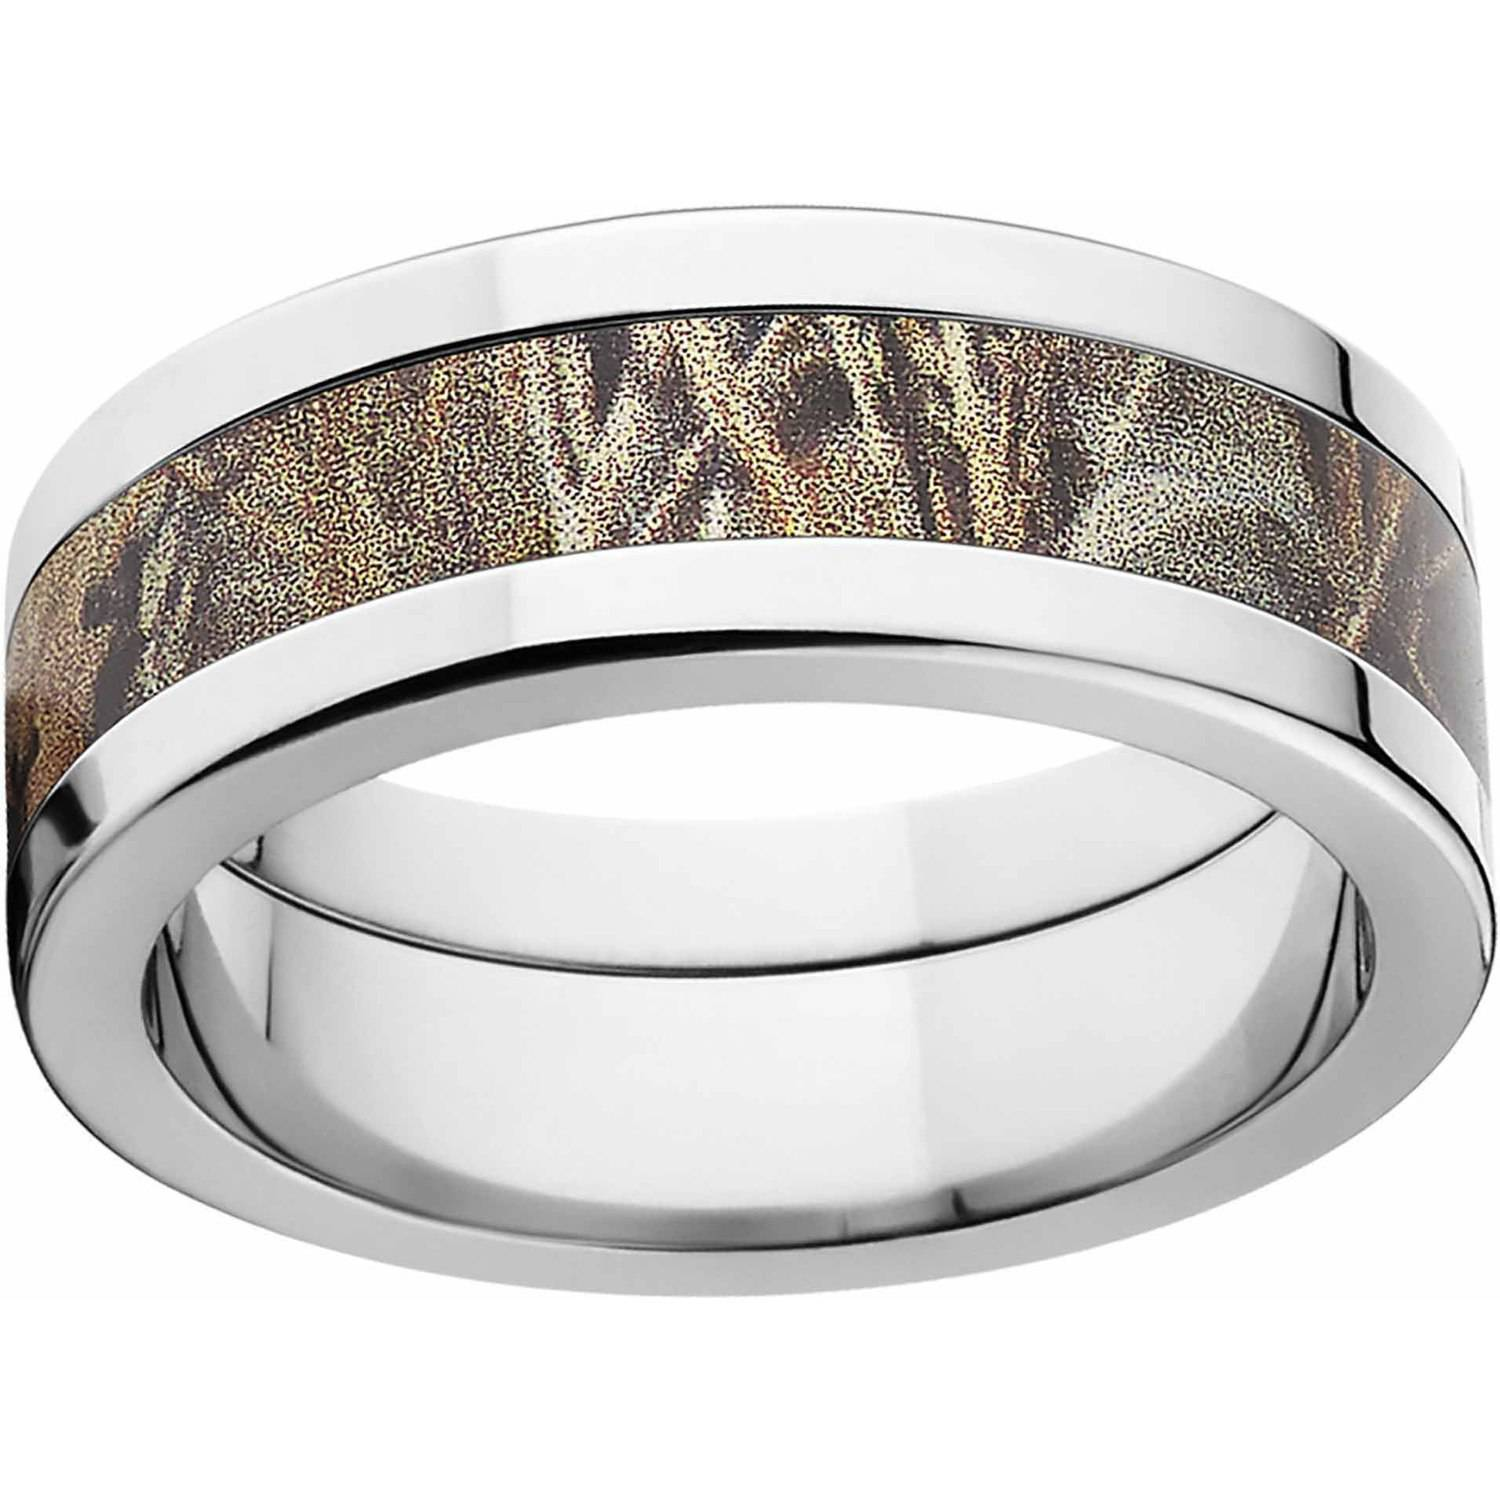 realtree max 4 mens camo 8mm stainless steel wedding band walmartcom